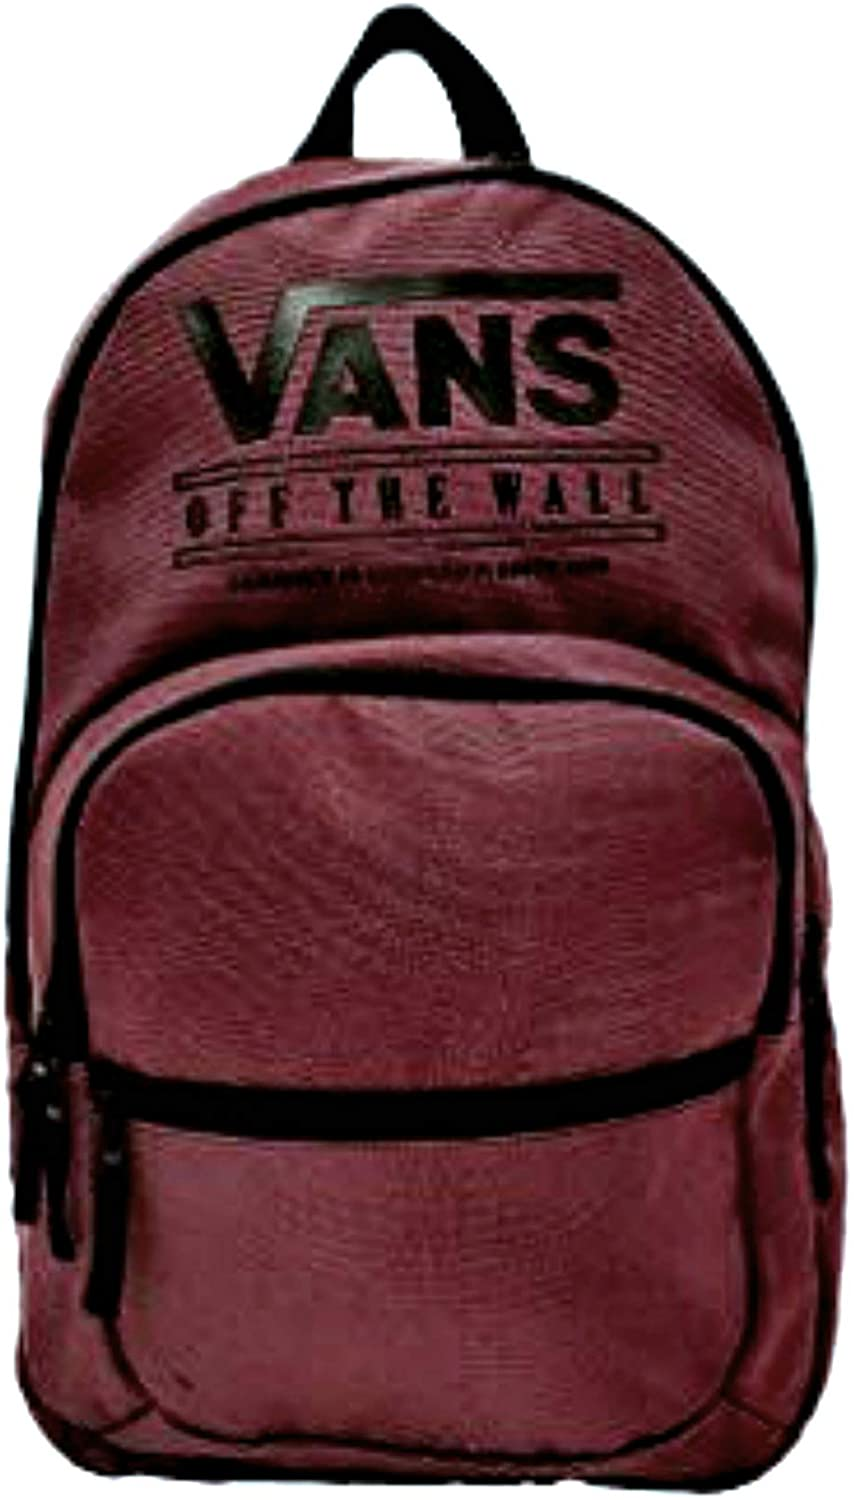 Vans OFF THE WALL Motiveatee Backpack Tawny Port OS VN0A4B28SQ3